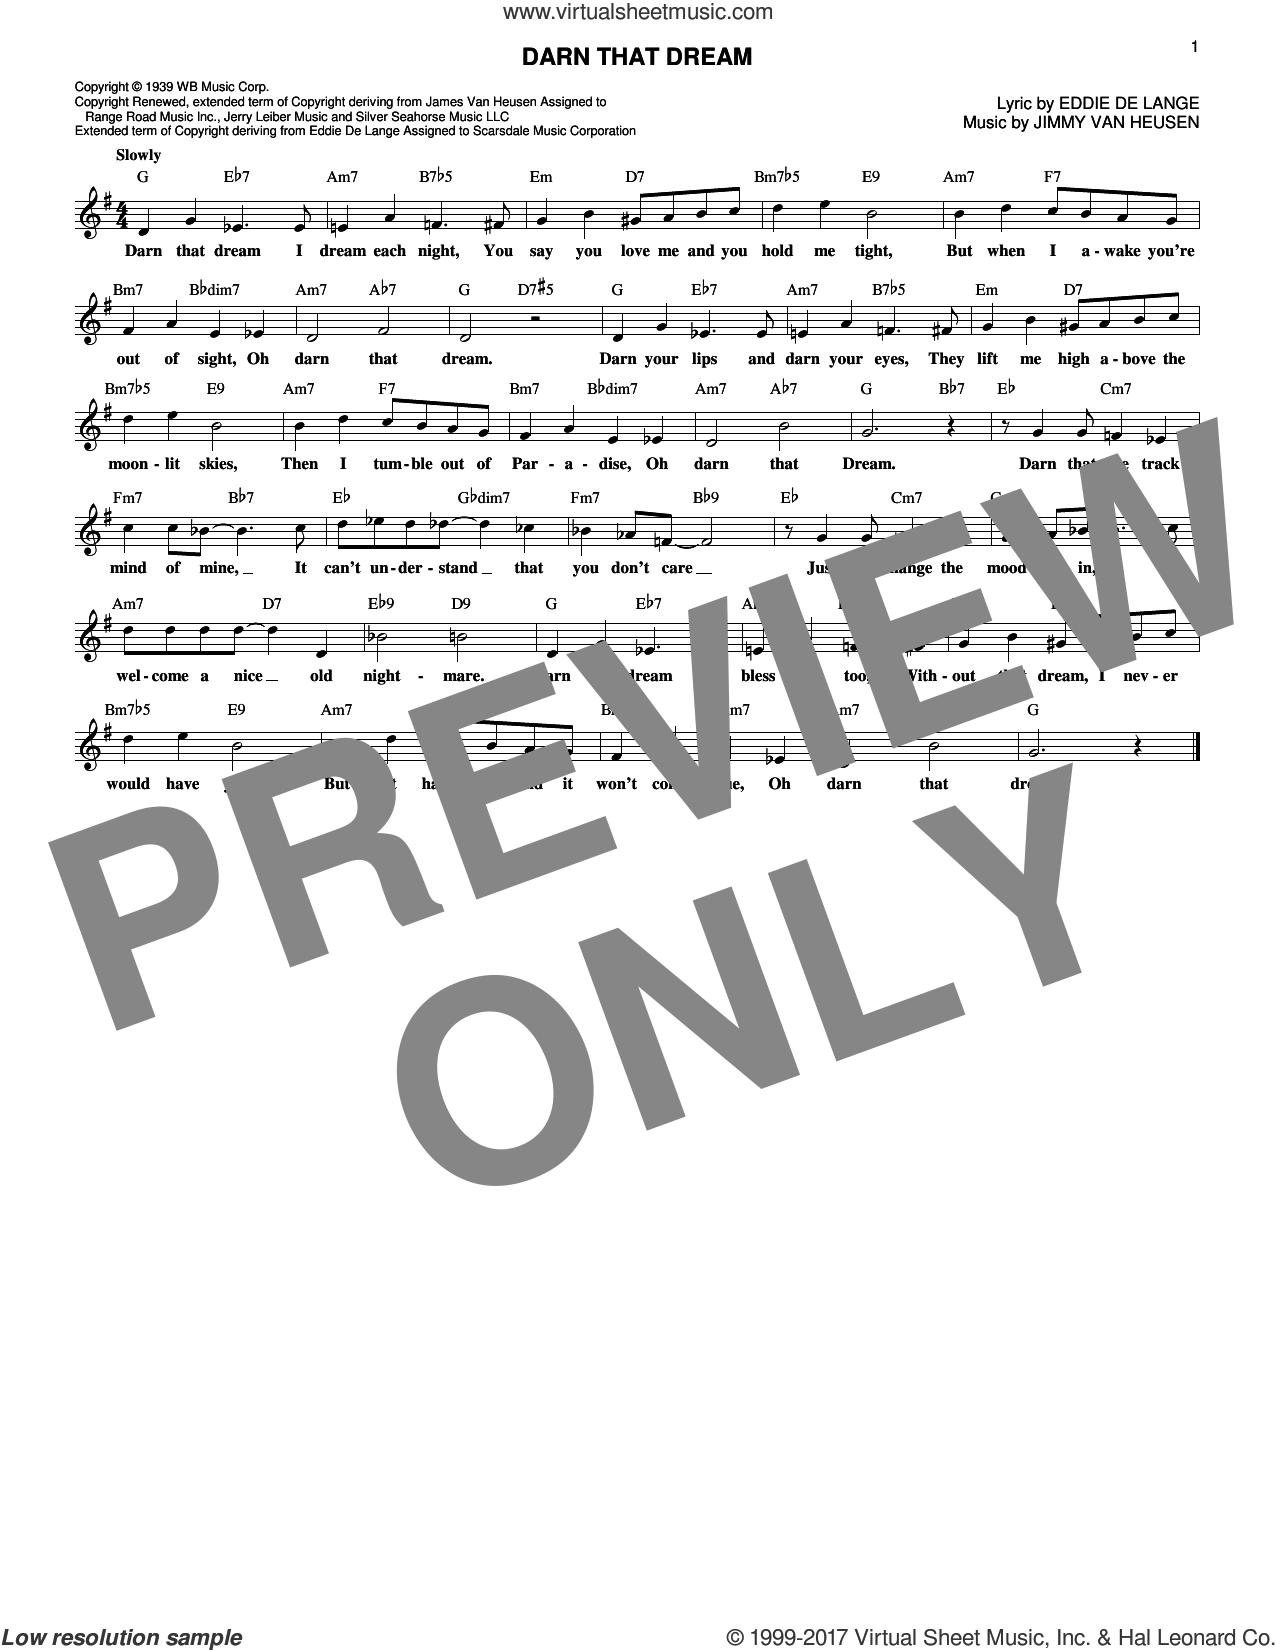 Darn That Dream sheet music for voice and other instruments (fake book) by Miles Davis, Benny Goodman, Tommy Dorsey, Eddie DeLange and Jimmy Van Heusen, intermediate. Score Image Preview.